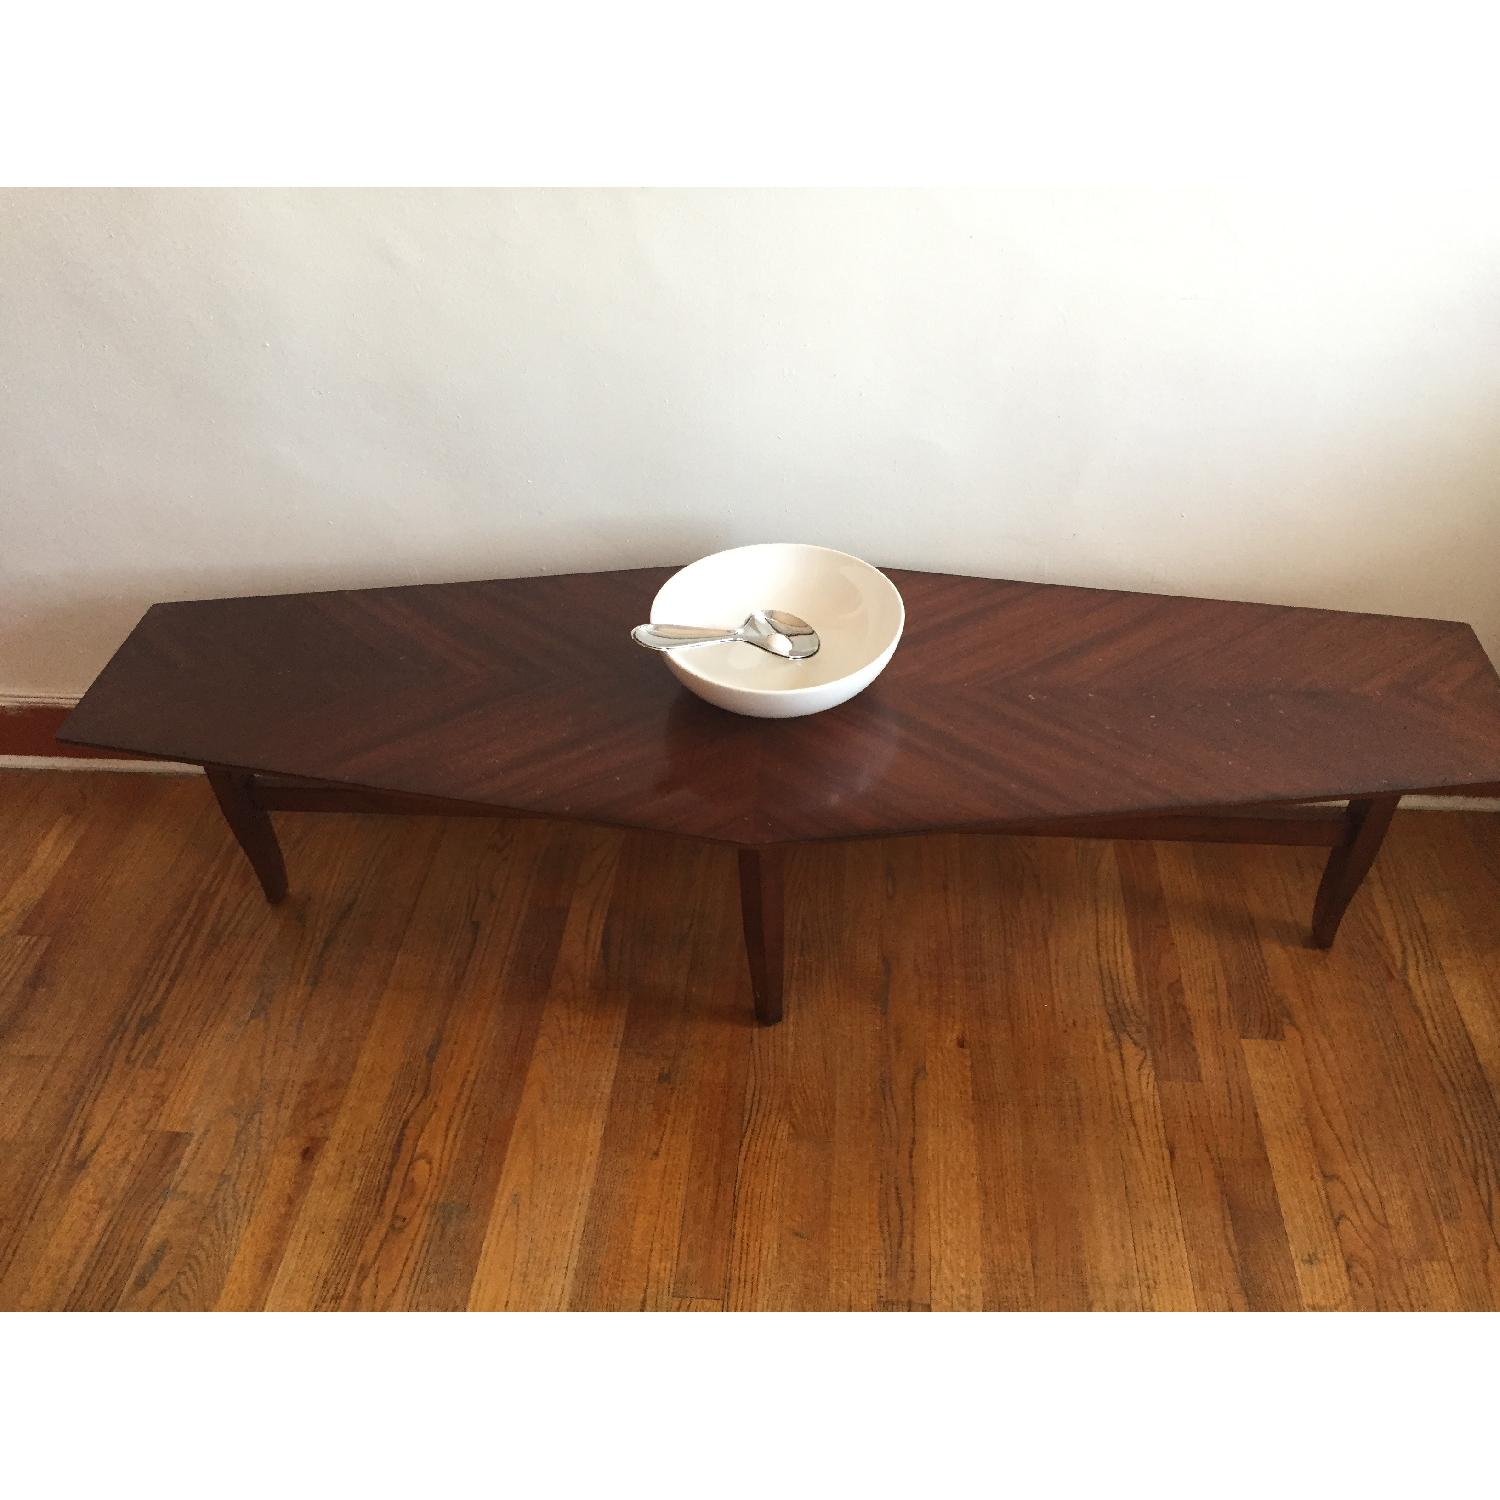 Mitchell Gold + Bob Williams Surfboard Coffee Table - image-2